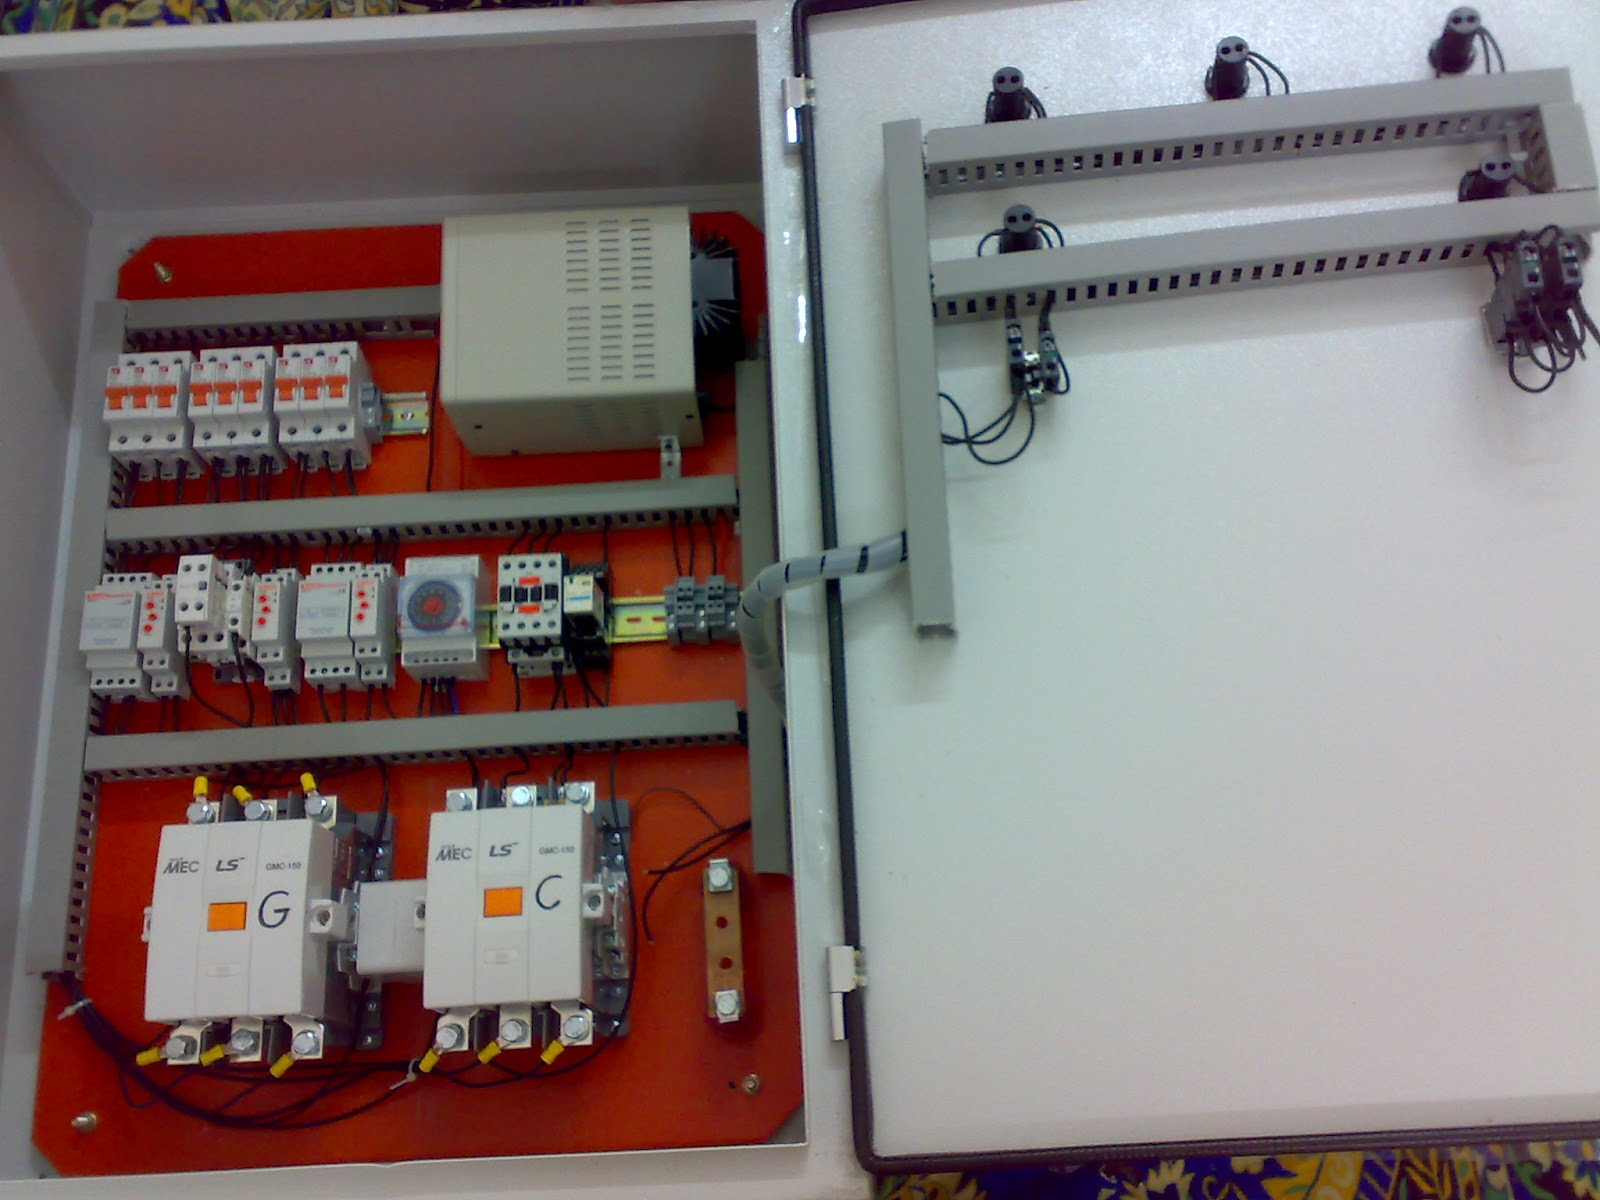 generator automatic transfer switch wiring diagram raid 5 concept with portable design and